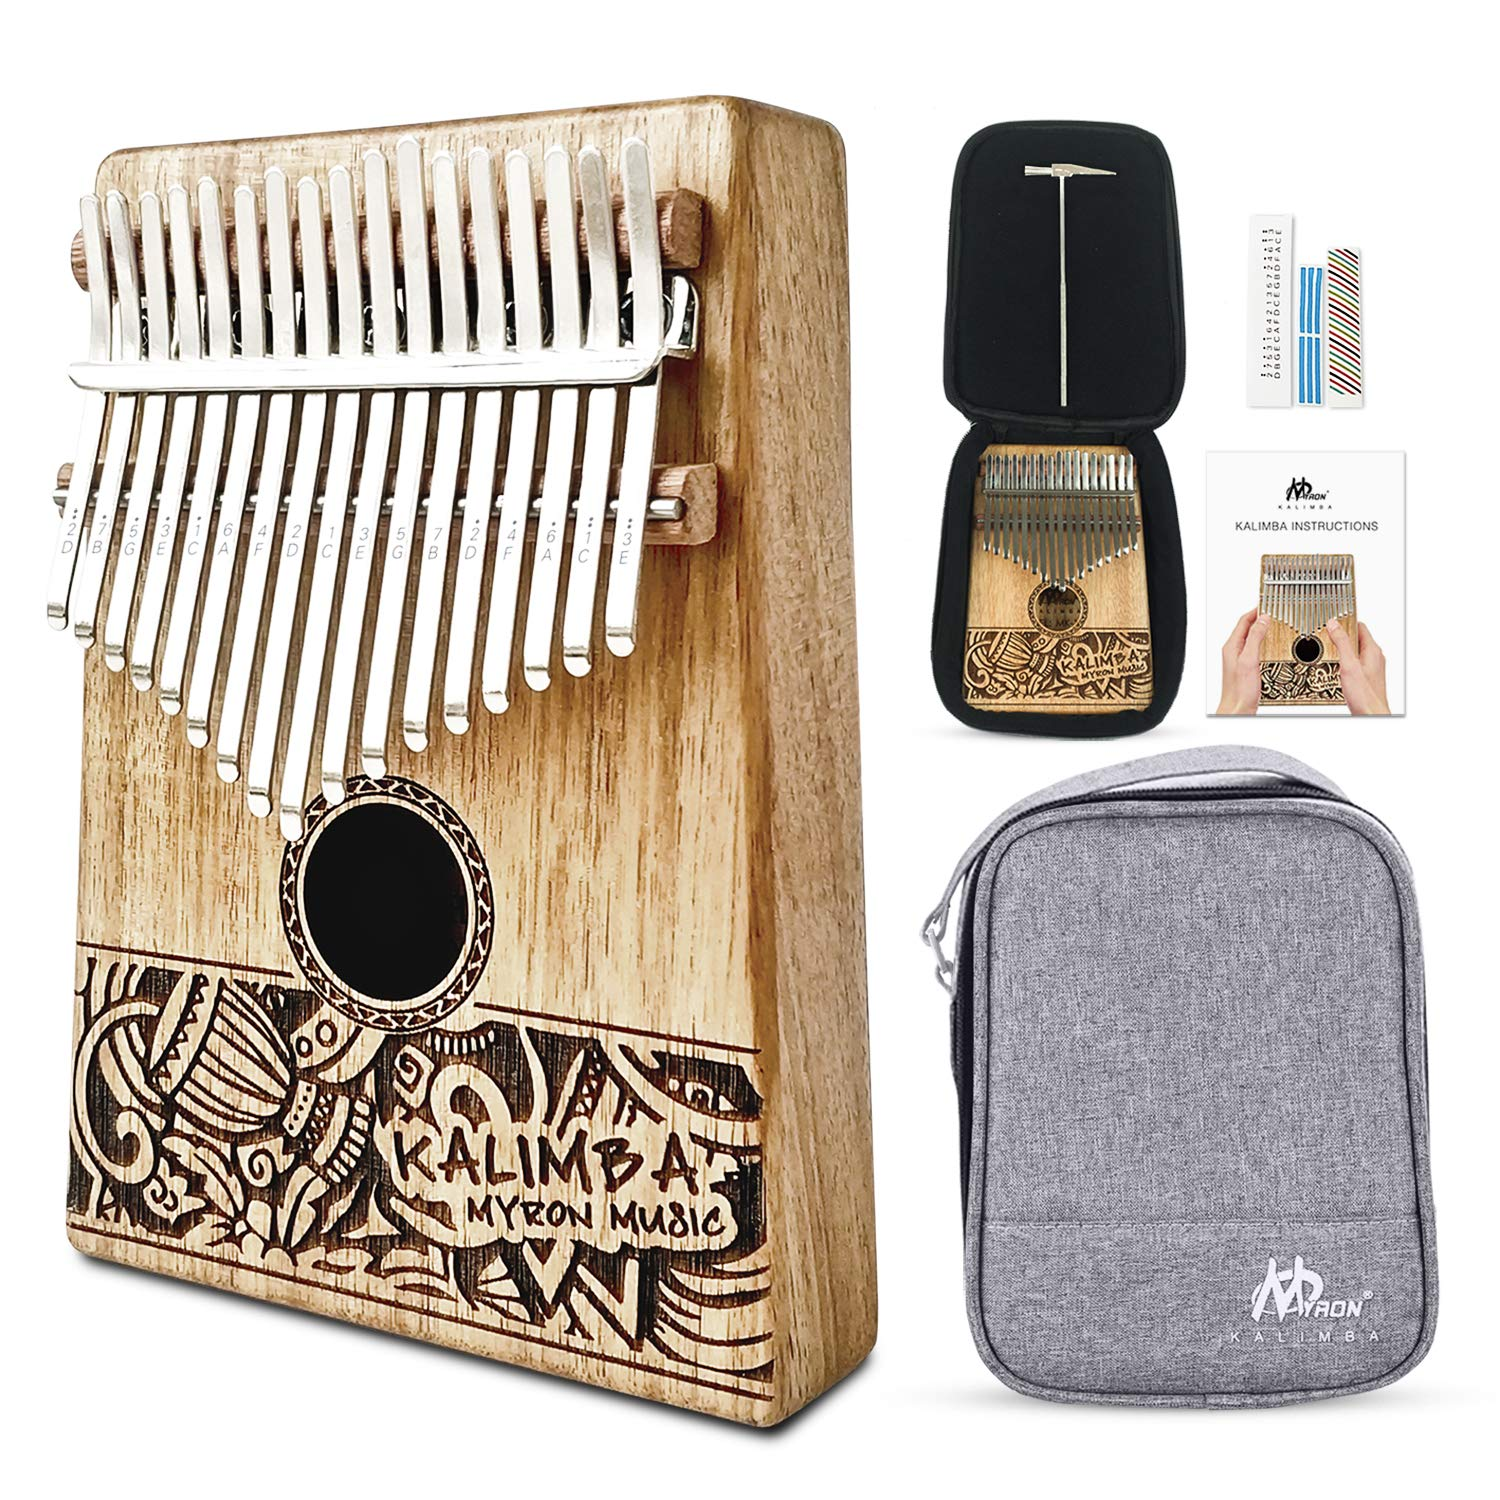 MYRON Kalimba 17keys Thumb Piano Solid Koa with Portable Protective Case, tuning hammer chord sticker and sutdy instruction by Myron (Image #1)